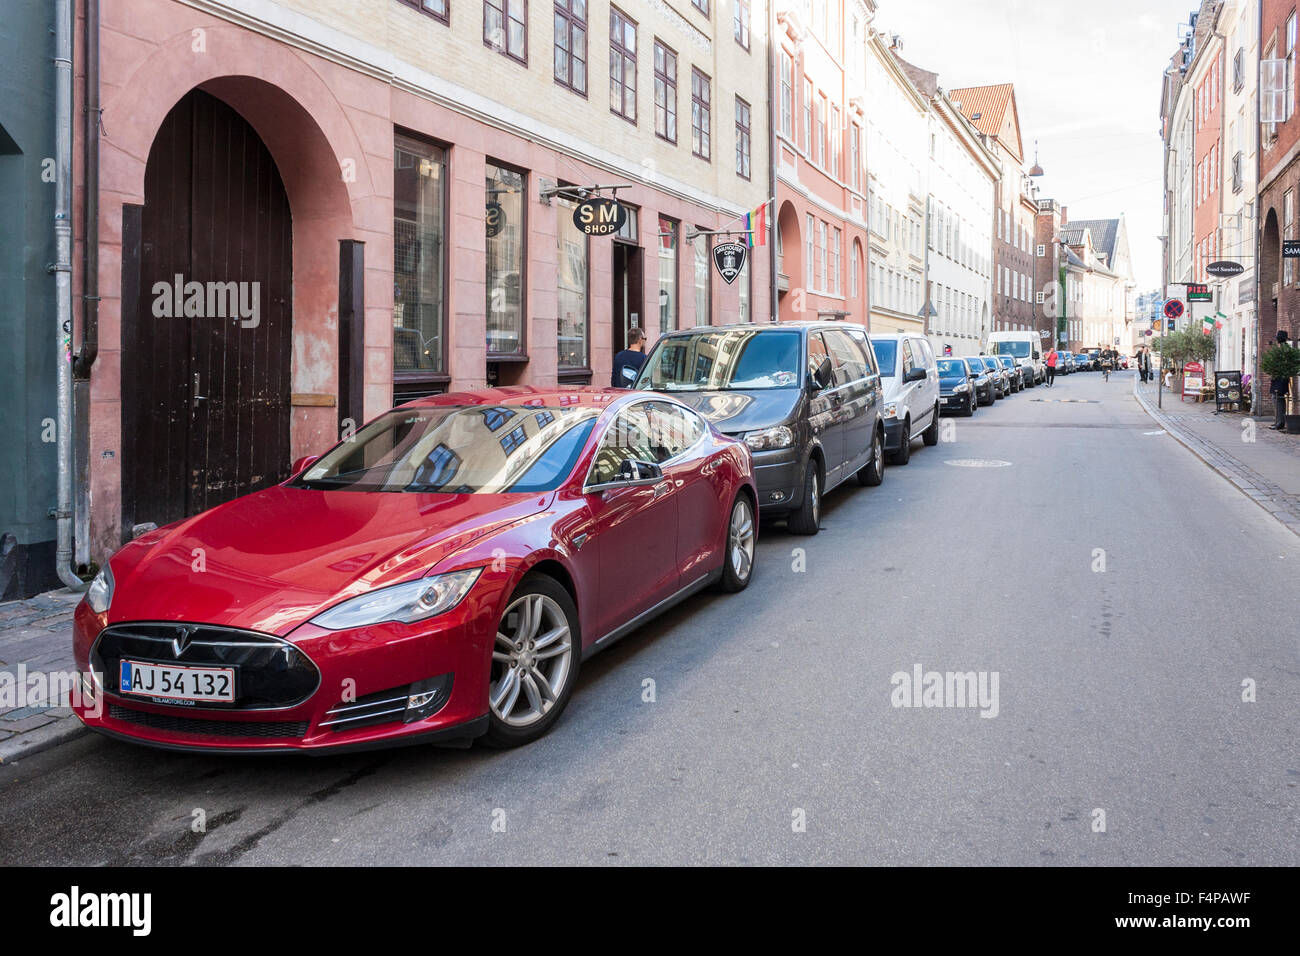 Tesla electric car, Copenhagen, Denmark, Europe. - Stock Image